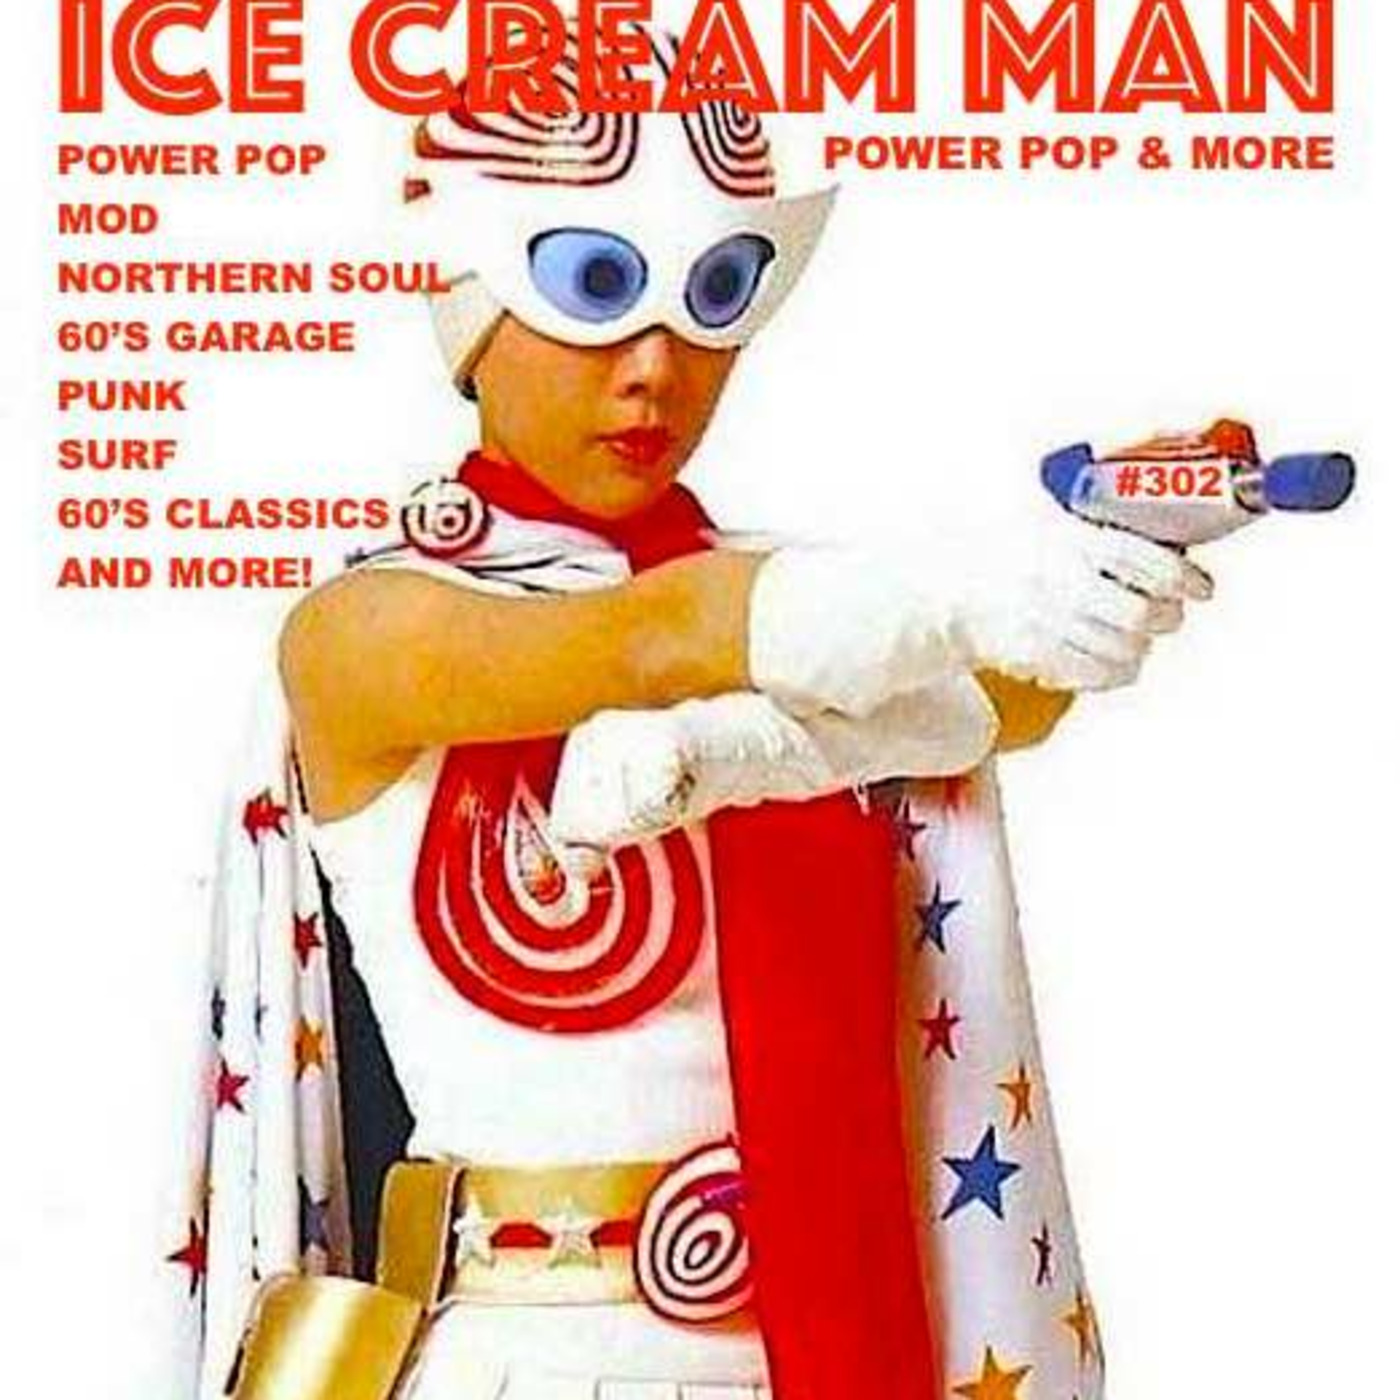 Ice Cream Man Power Pop and More #302